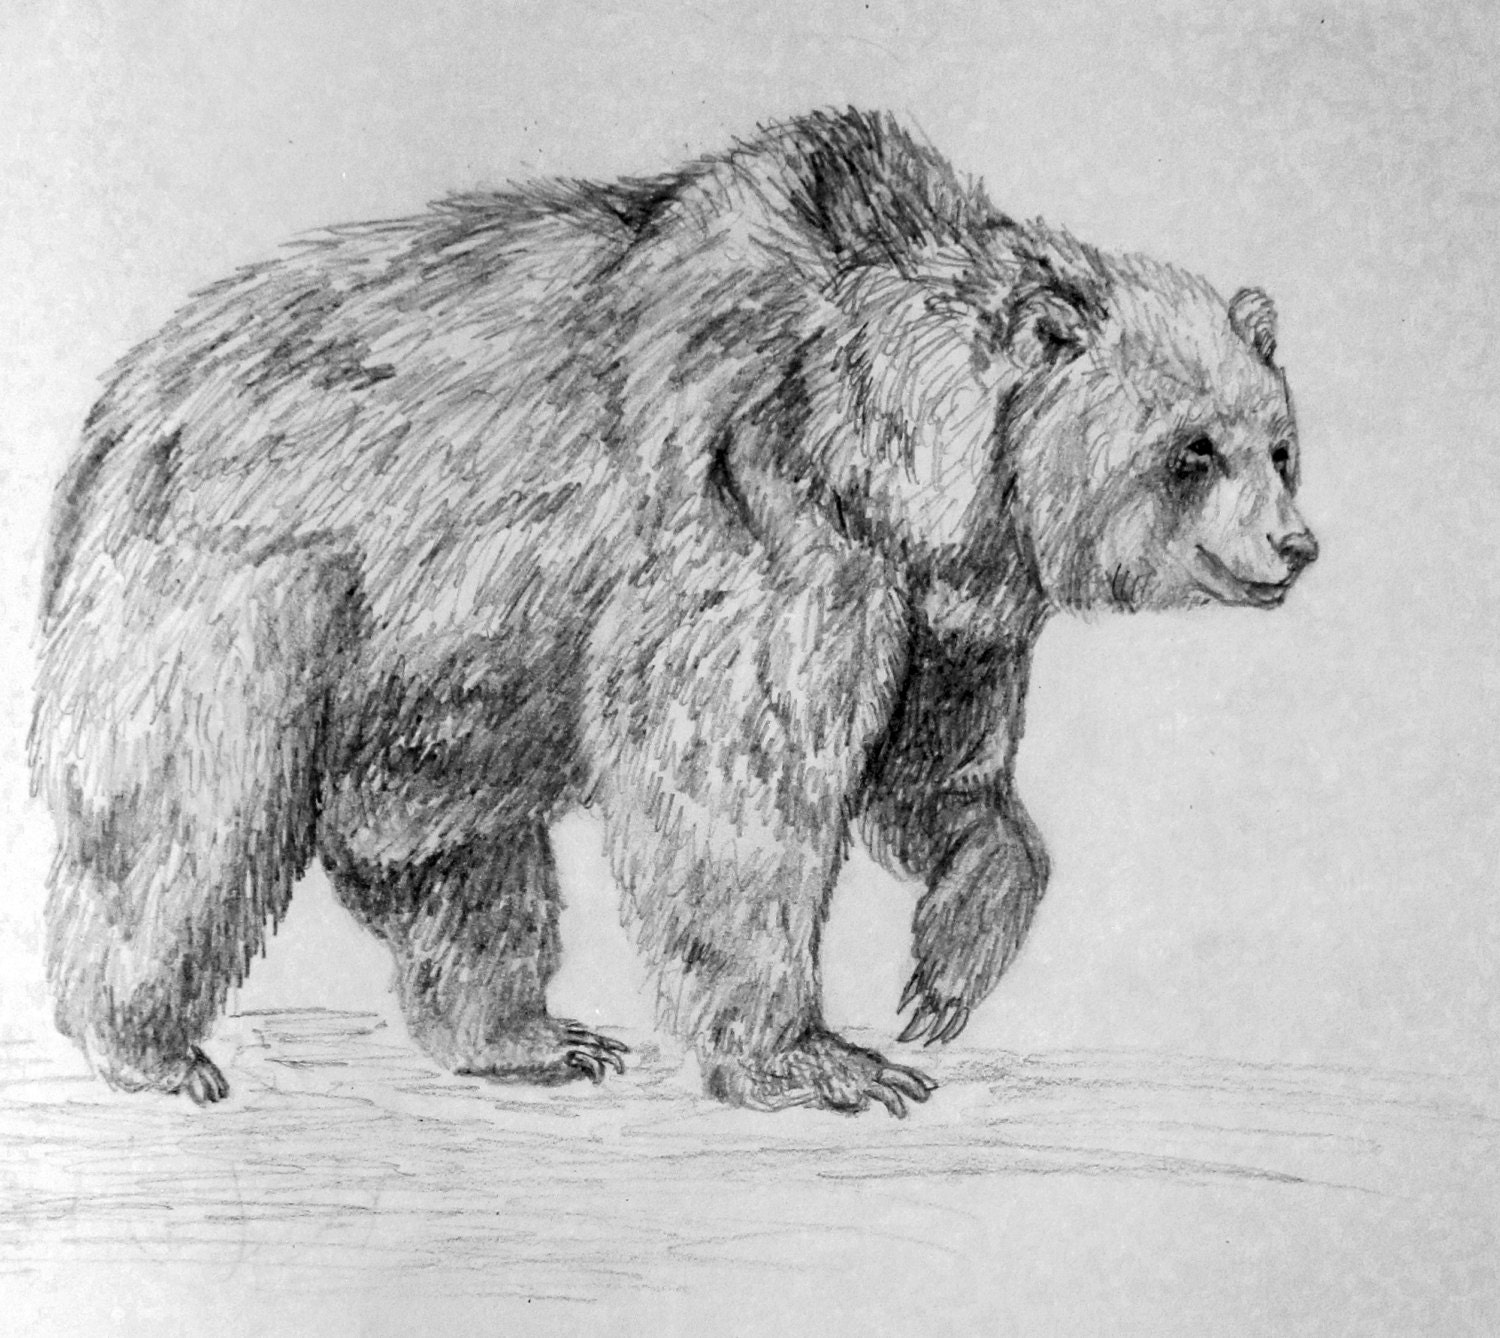 Items similar to Grizzly Bear Pencil Drawing Print on Etsy  Items similar t...